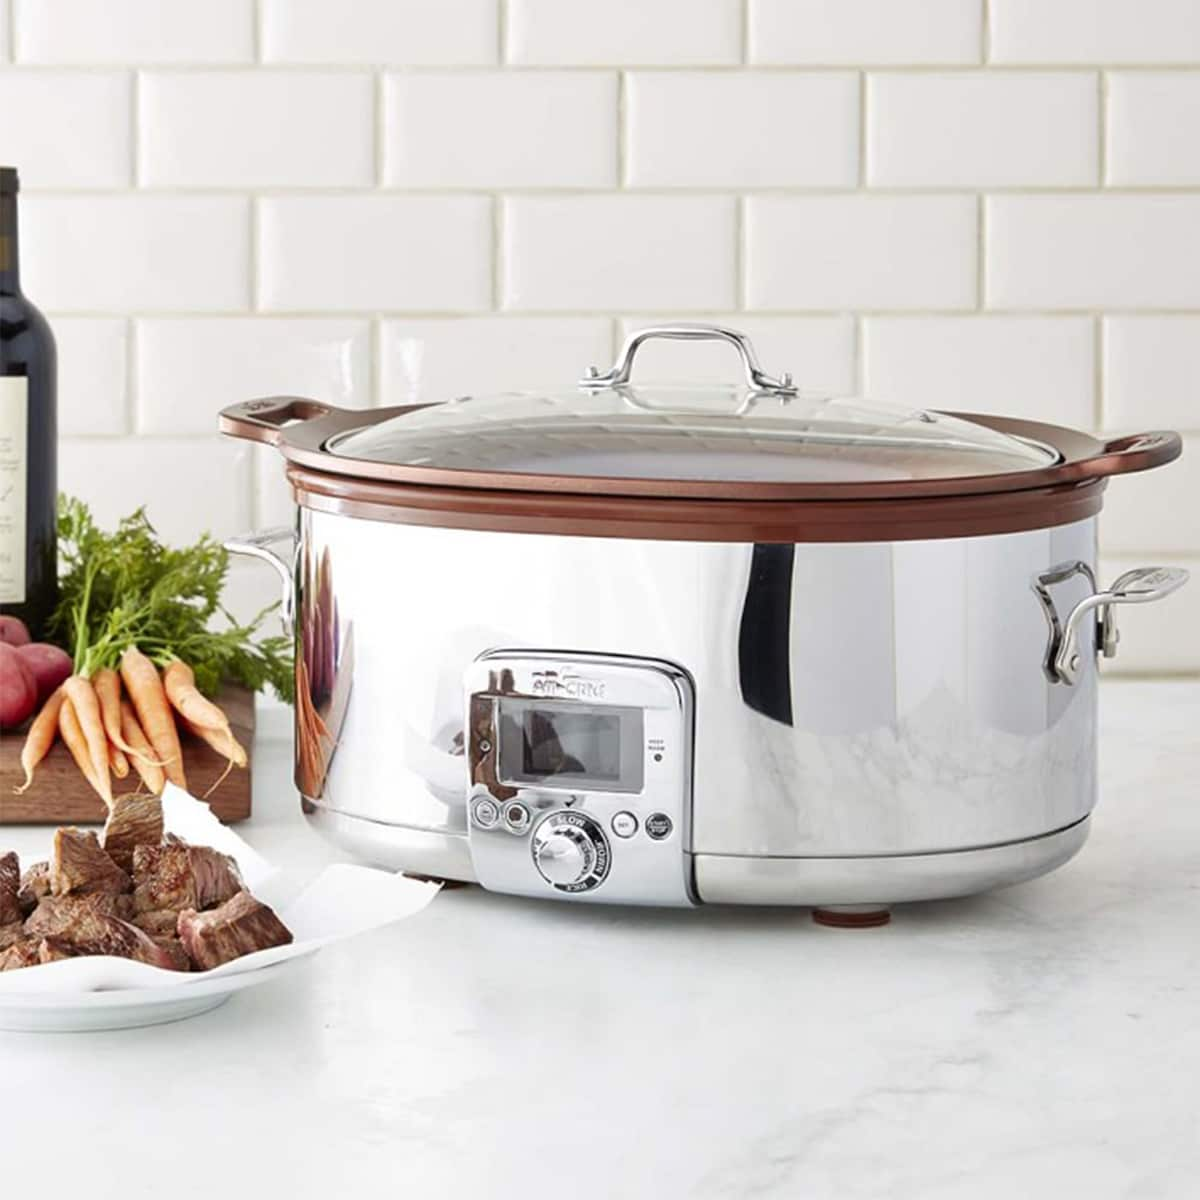 The 5 Prettiest Slow Cookers You Can Buy: gallery image 1